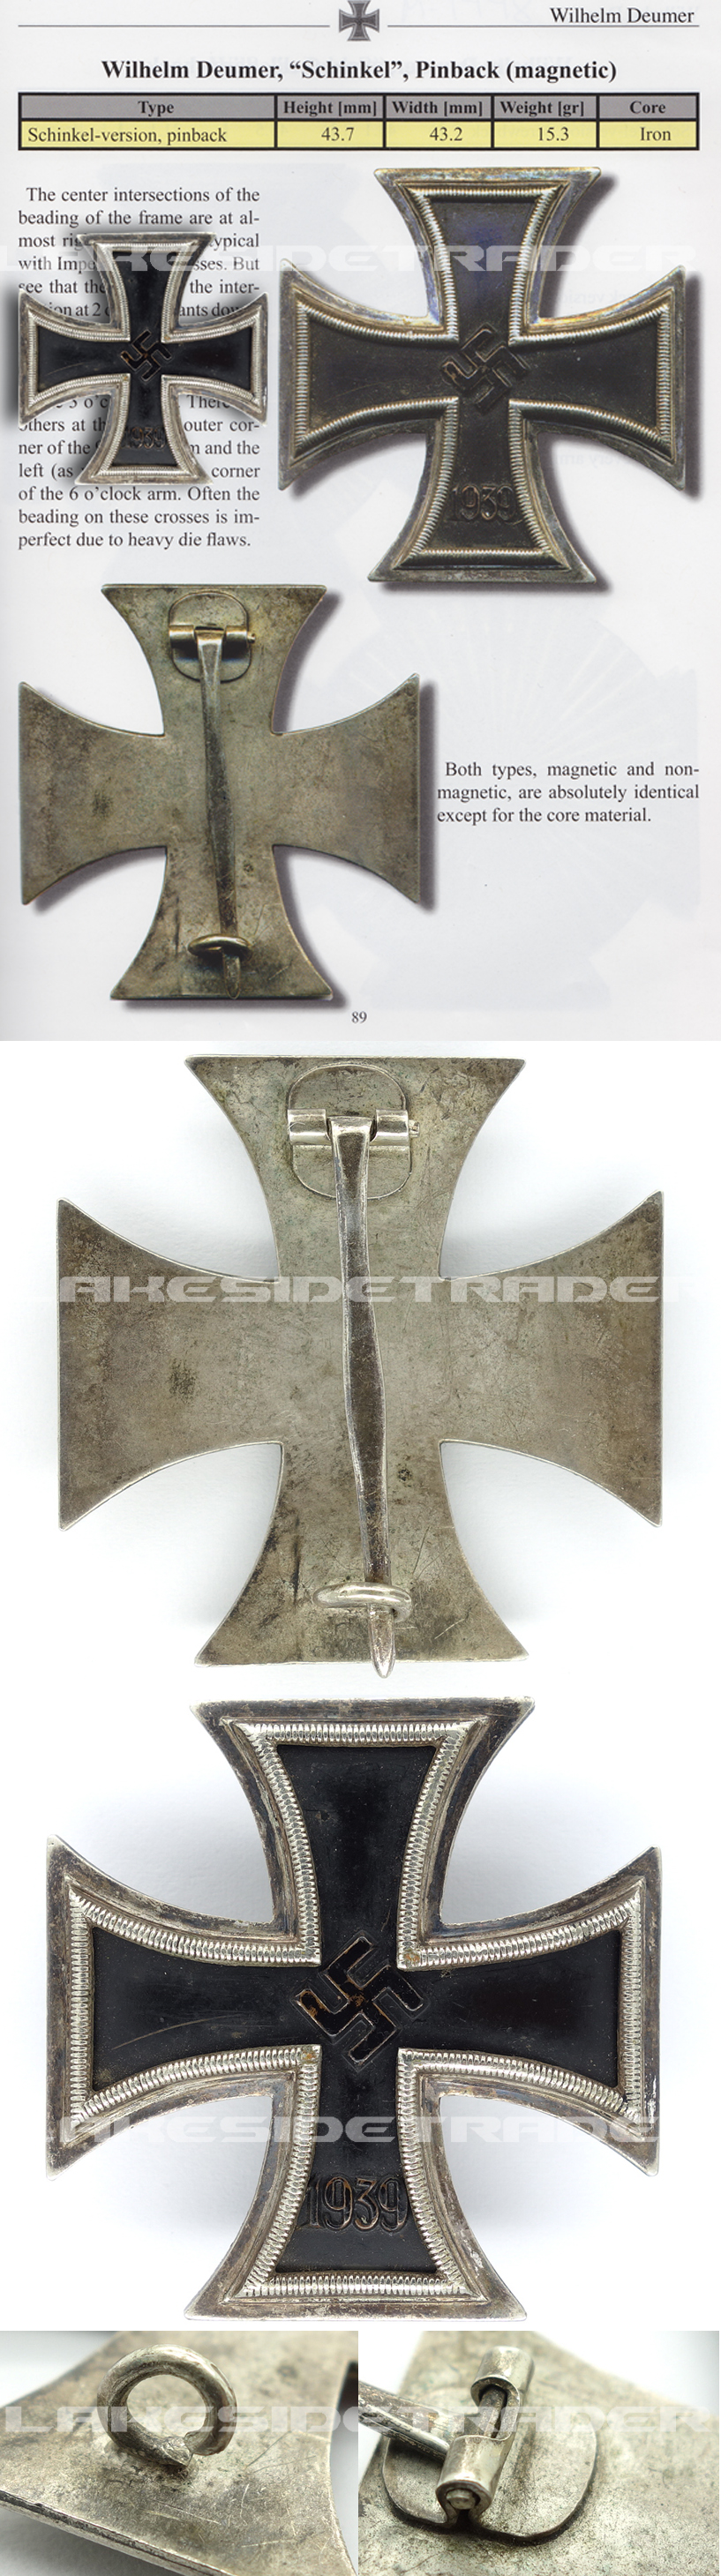 THE Textbook Example ‐ Schinkel 1st Class Iron Cross by W. Deumer